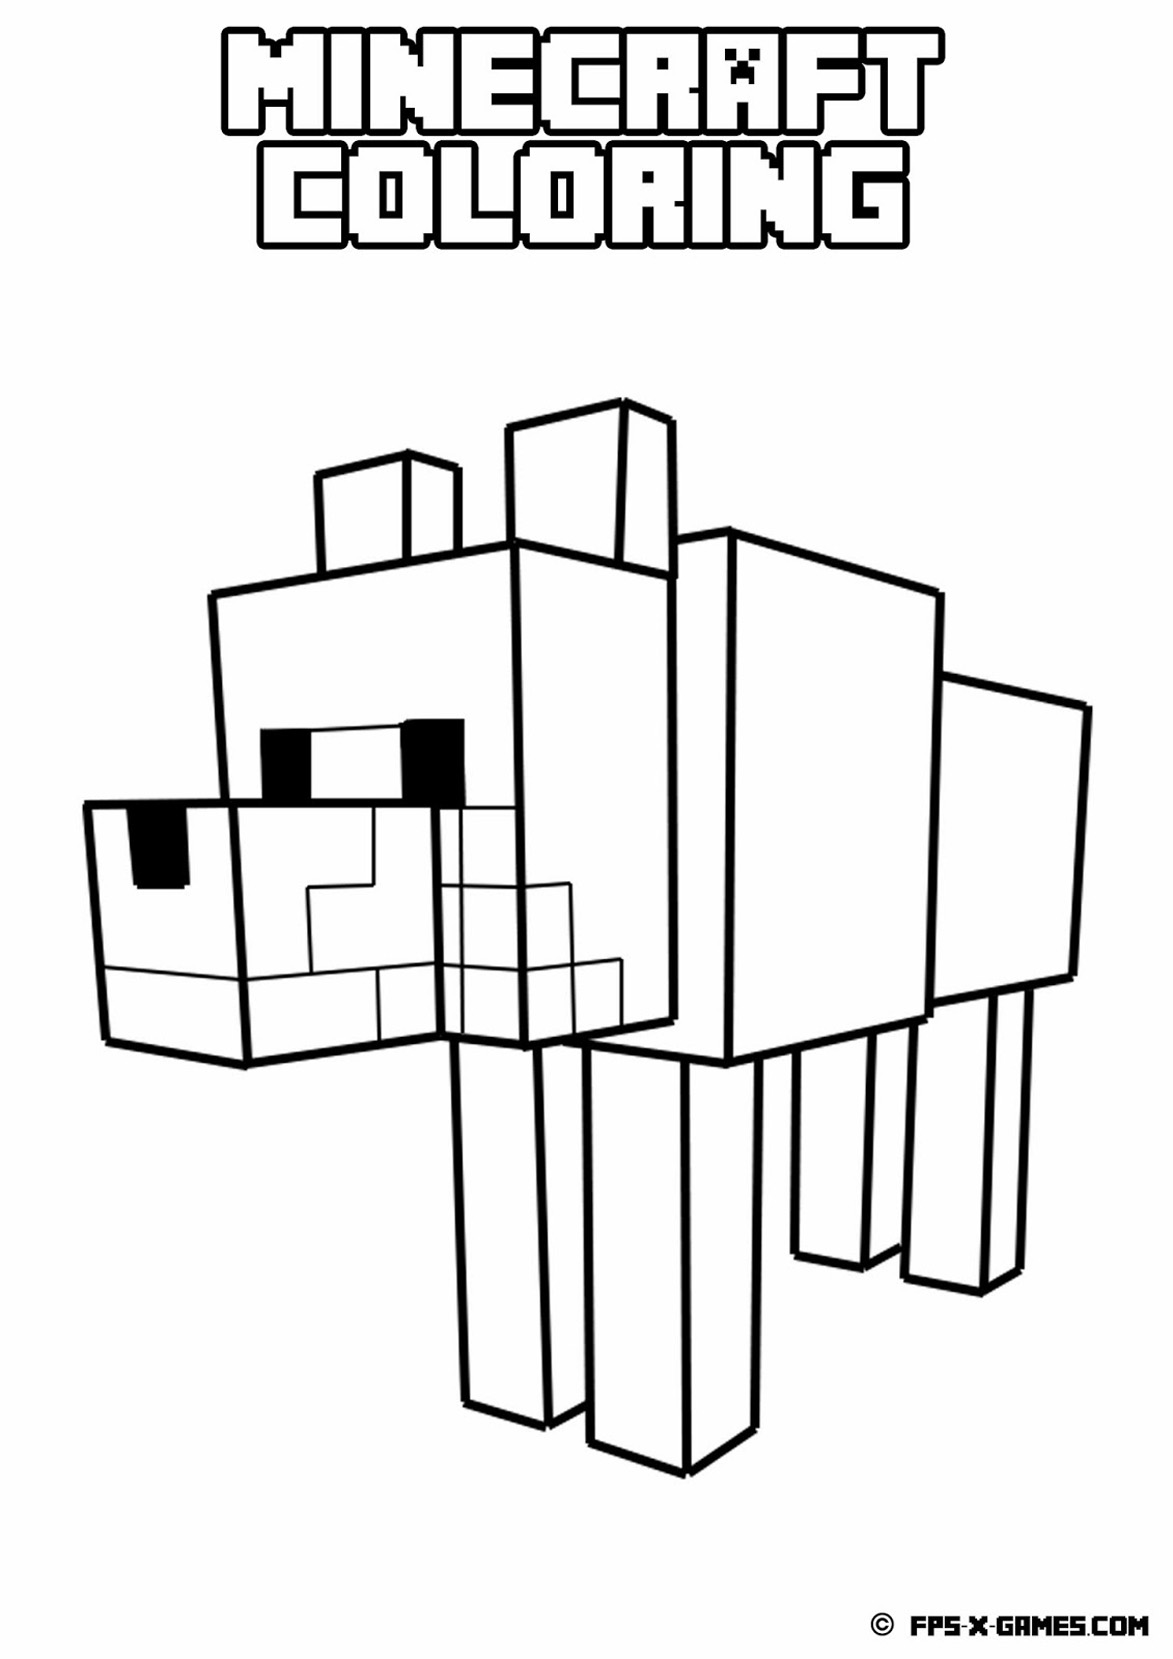 kaboose coloring pages thanksgiving in minecraft - photo #1